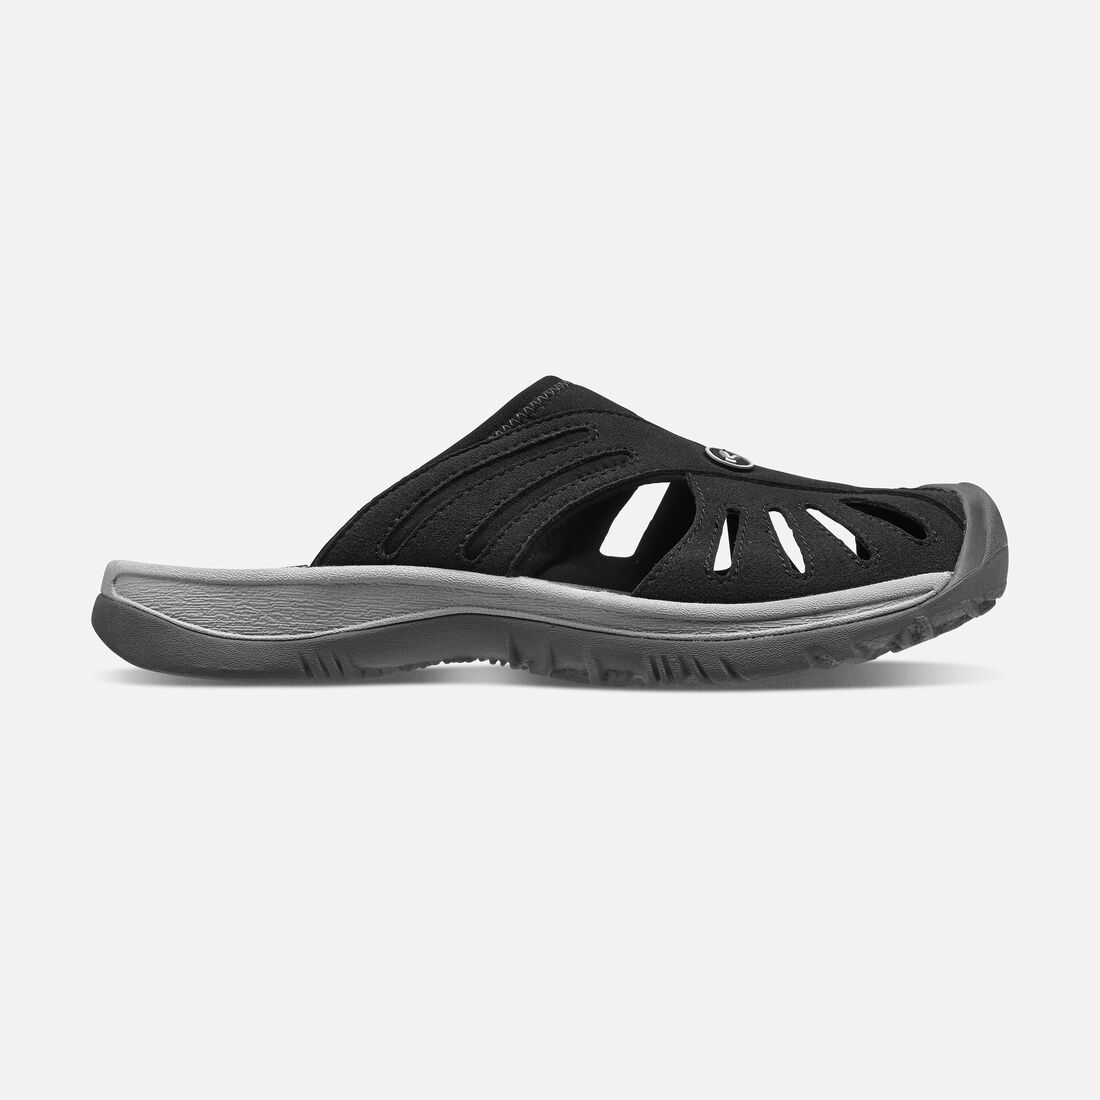 Women's Rose Slide in Black/Neutral Gray - large view.